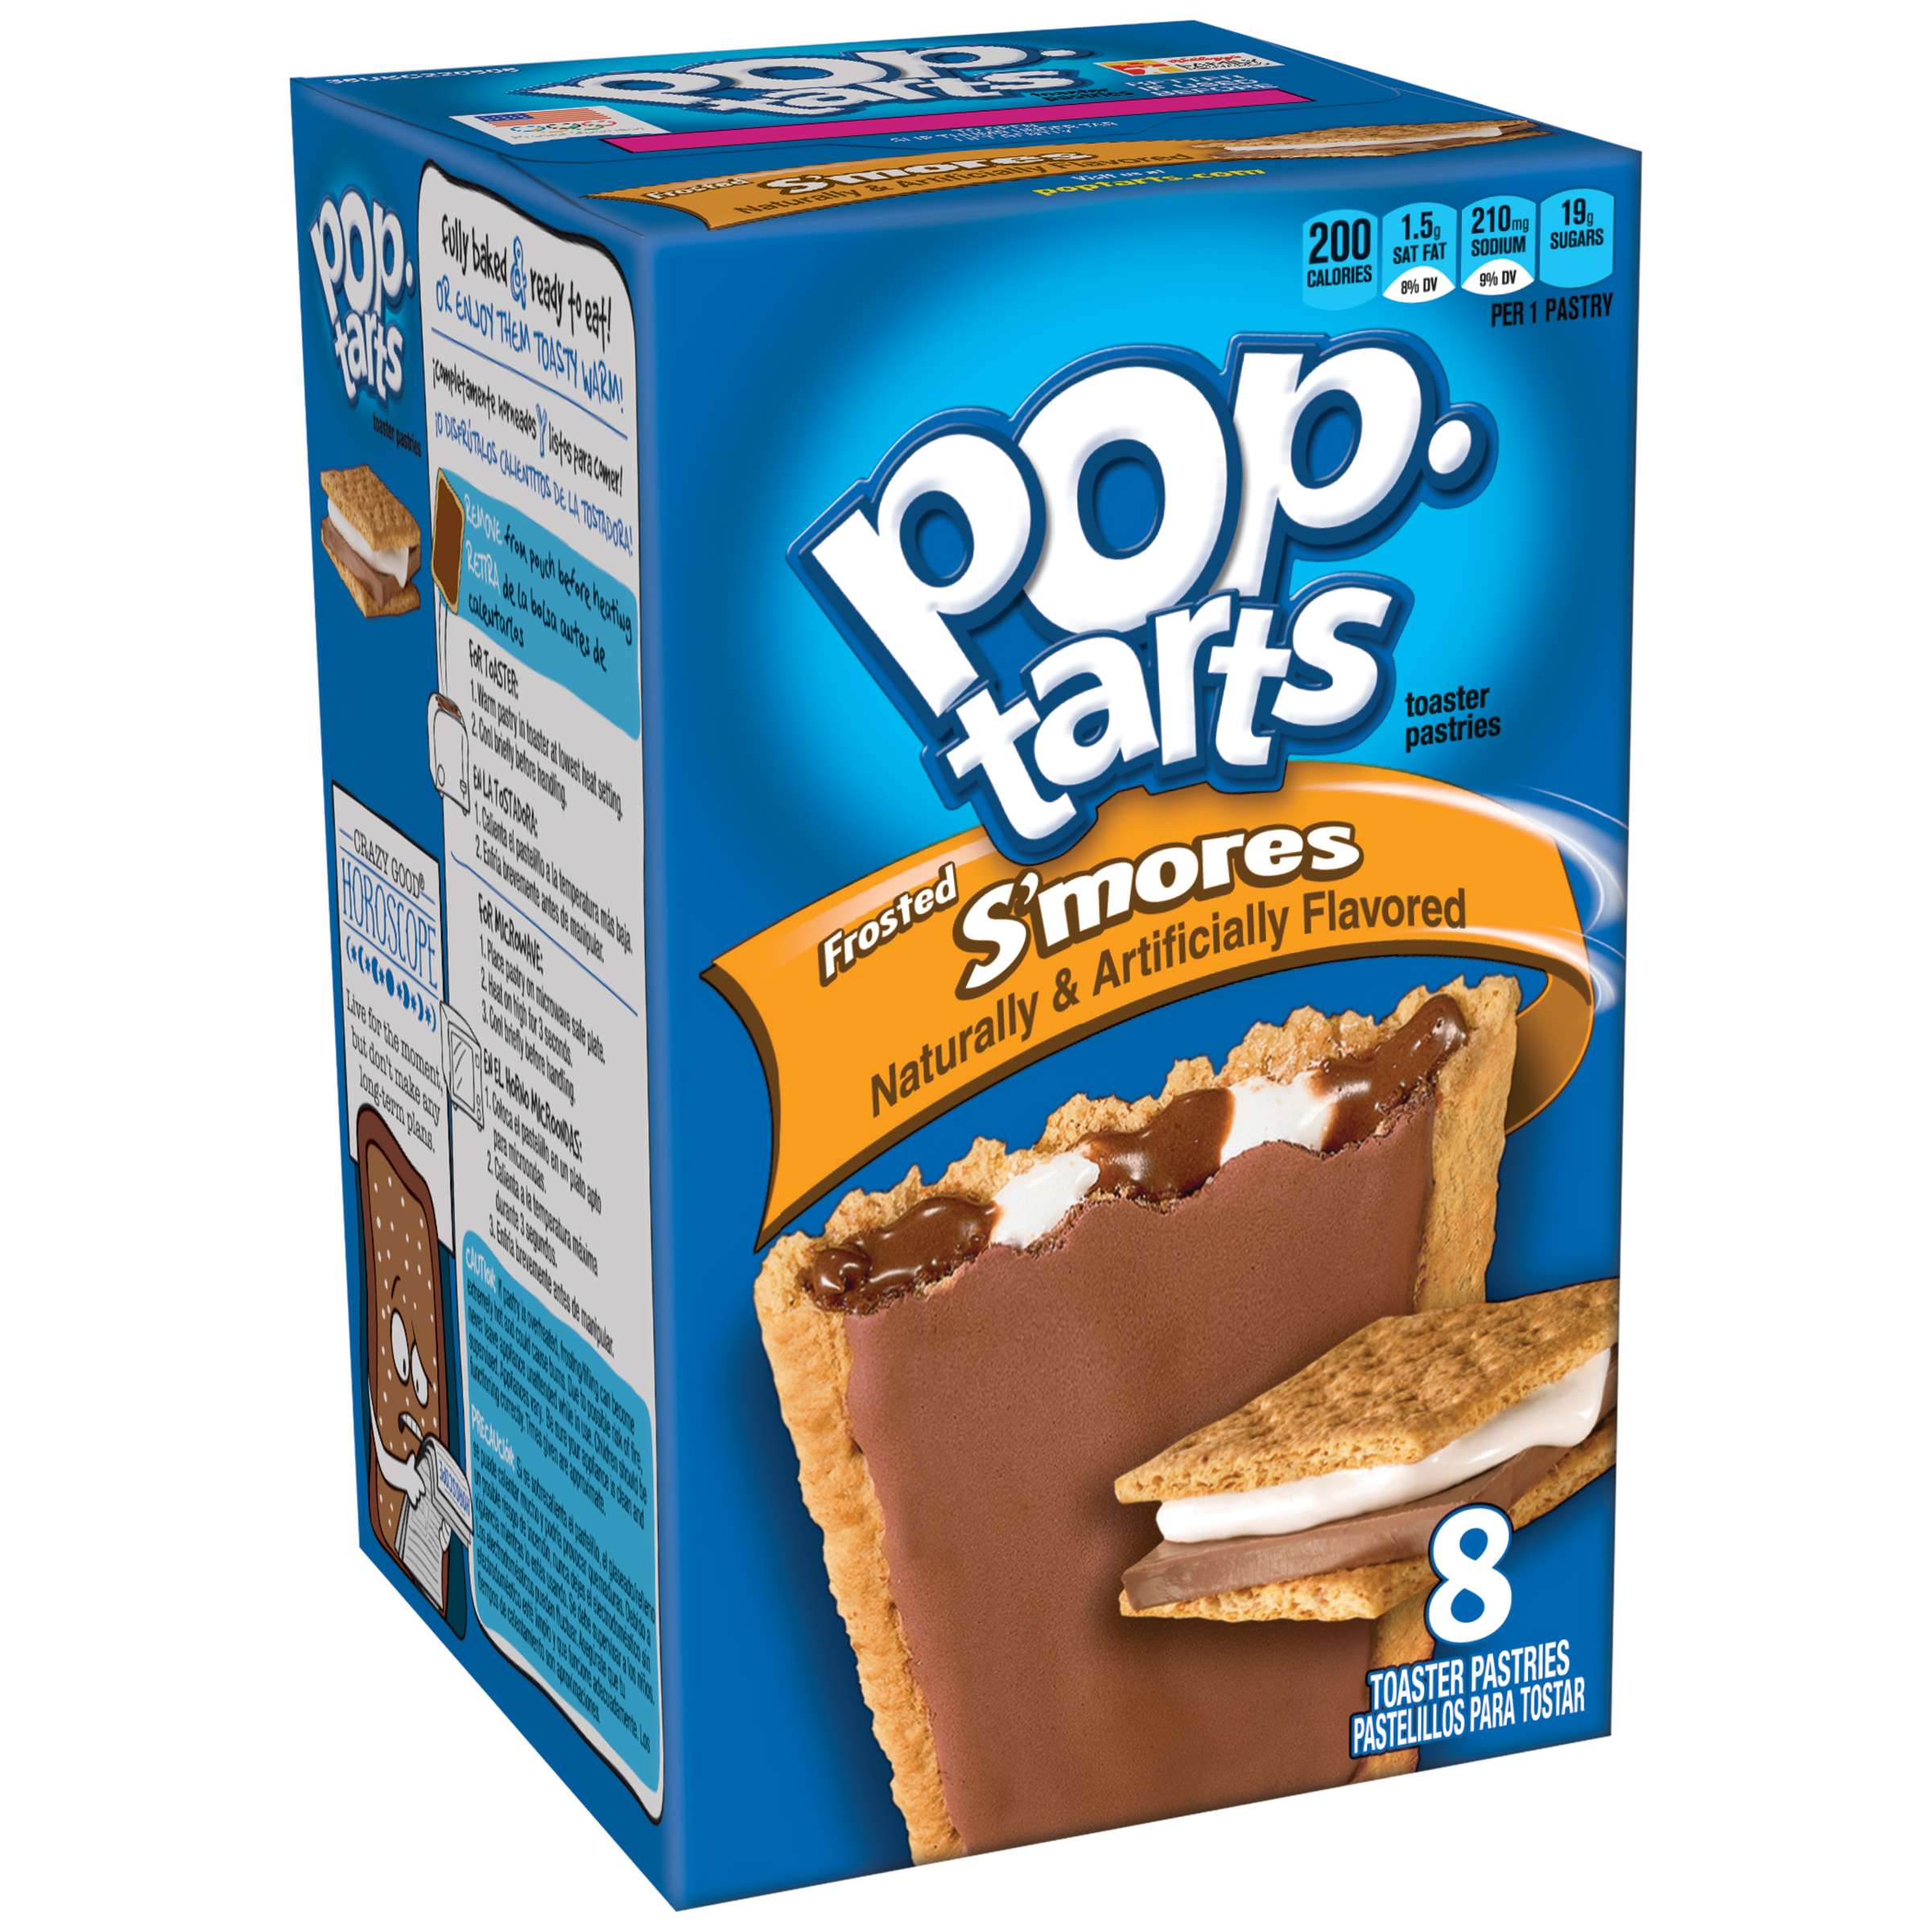 Kellogg's Pop-Tarts Breakfast Toaster Pastries, Frosted S'mores Flavored, 14.7 oz 8 Ct